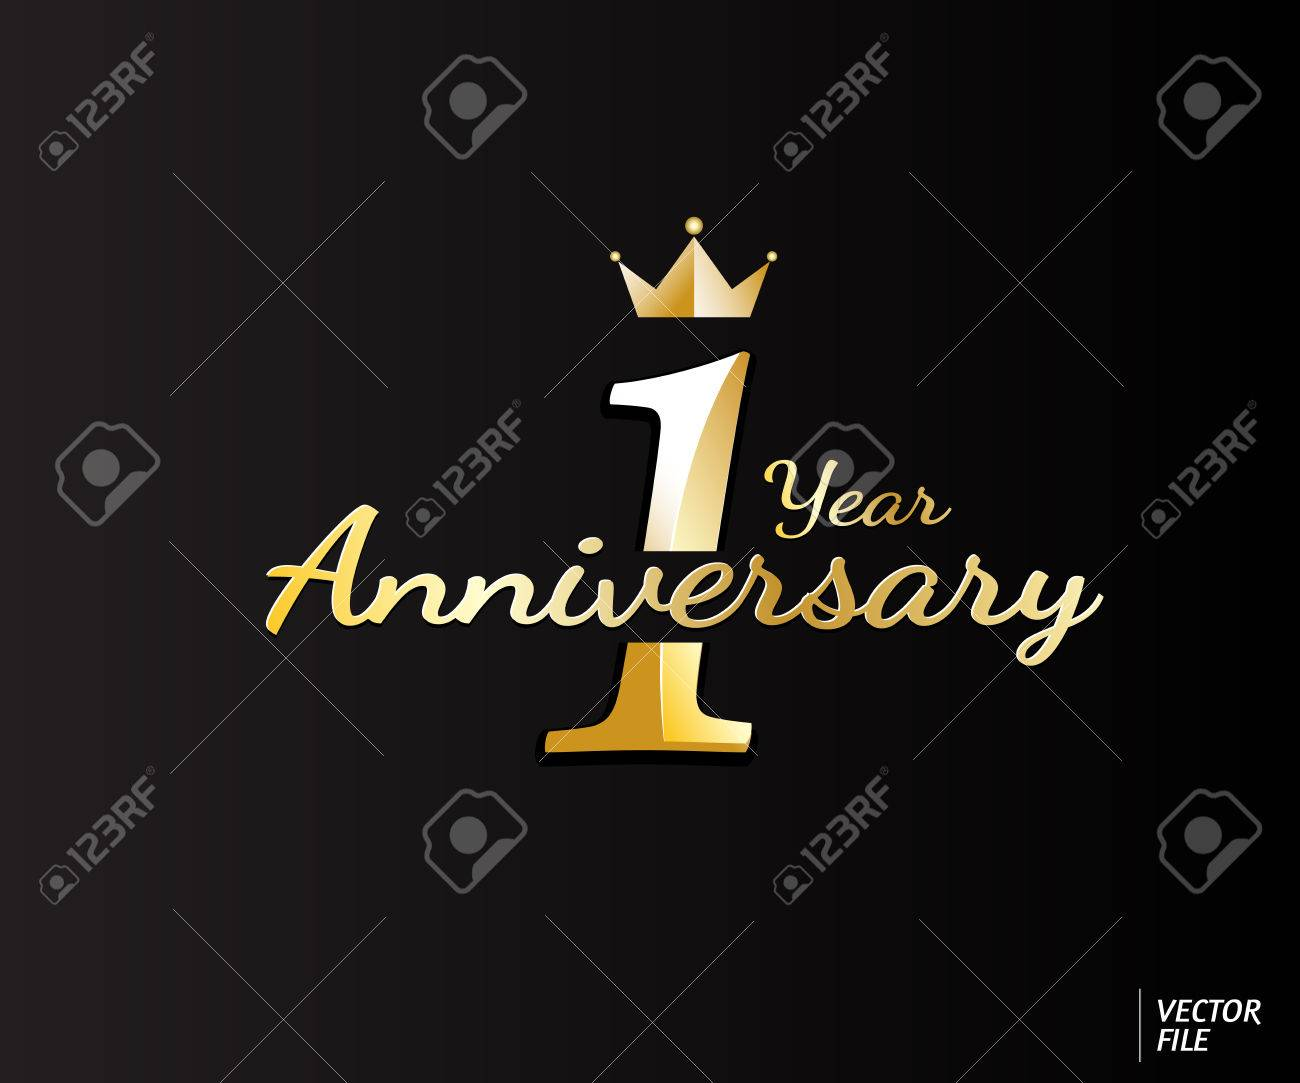 one year anniversary logo